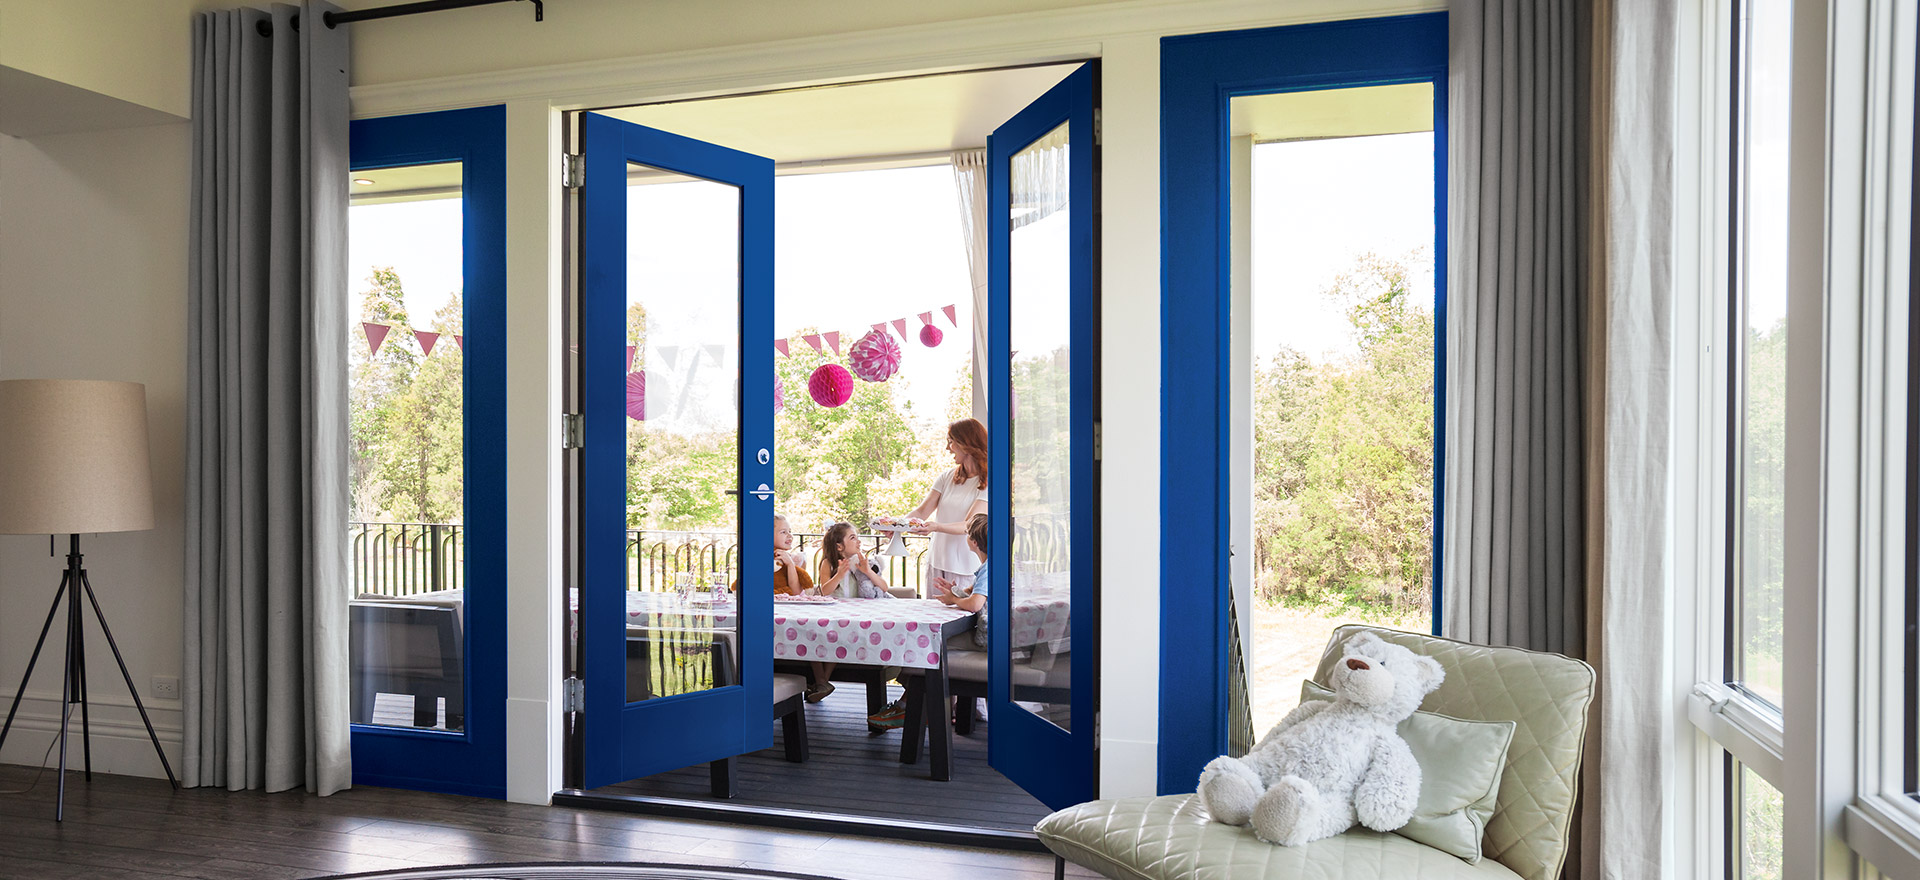 Double fiberglass patio doors and a party on patio